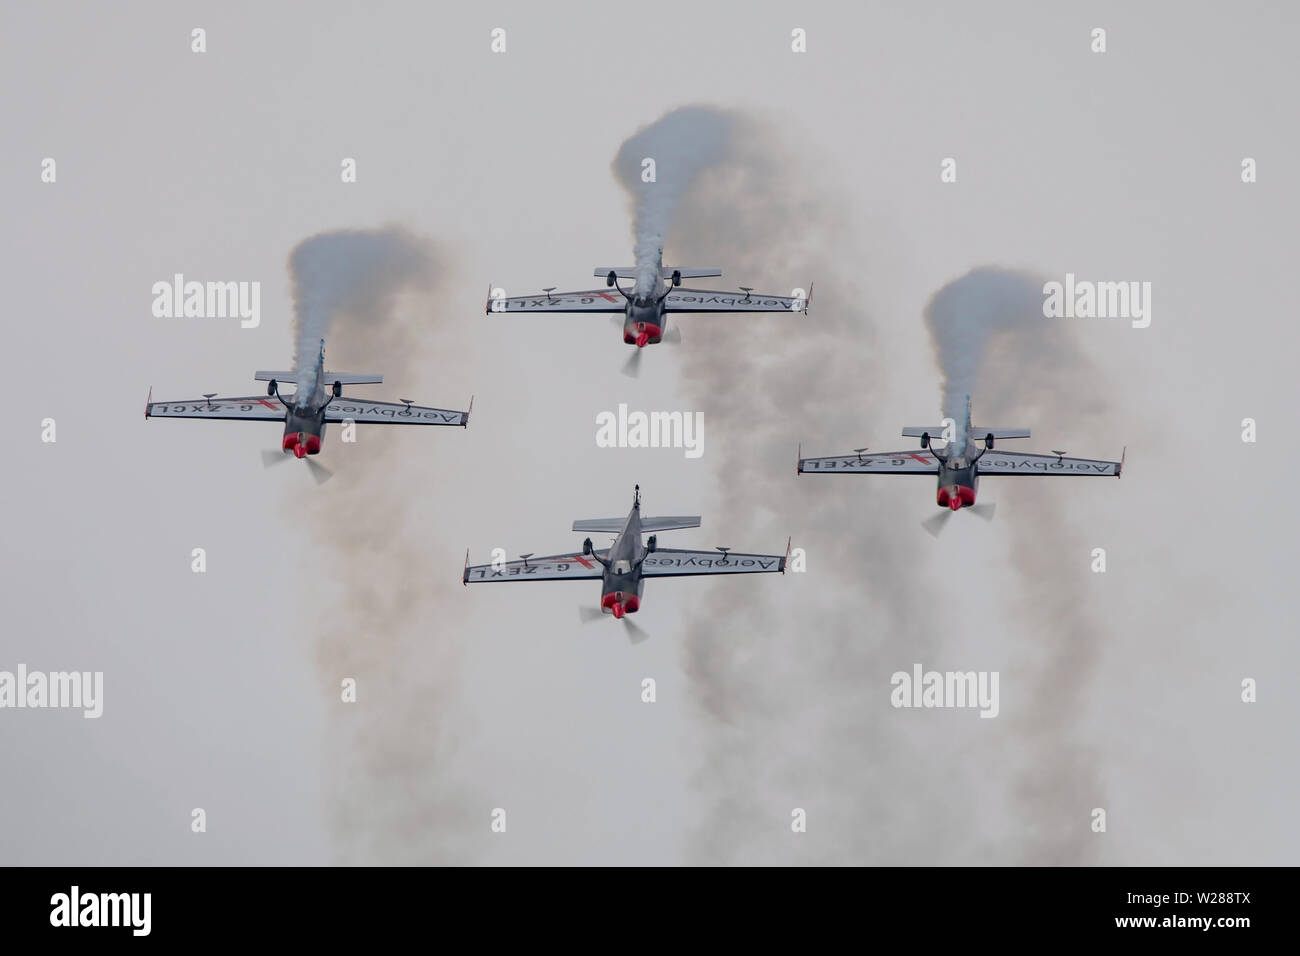 The Blades Aerobatic Display Team performing at the last Wings & Wheels airshow to be held at Dunsfold Aerodrome, UK on the 16th June 2019. Stock Photo